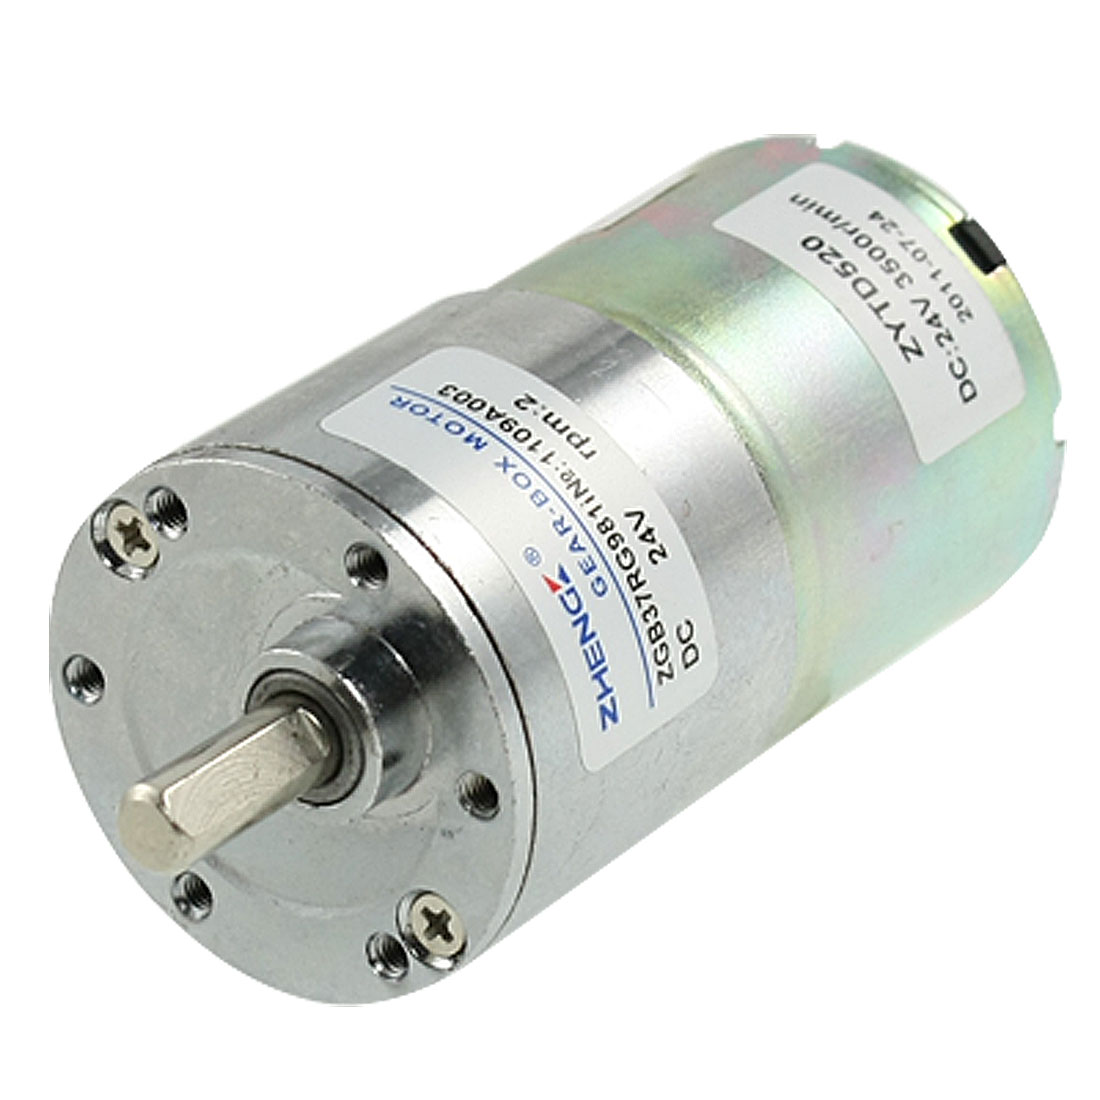 2RPM 16.5kg.cm 24V 0.33A Speed Reducing DC Geared Motor